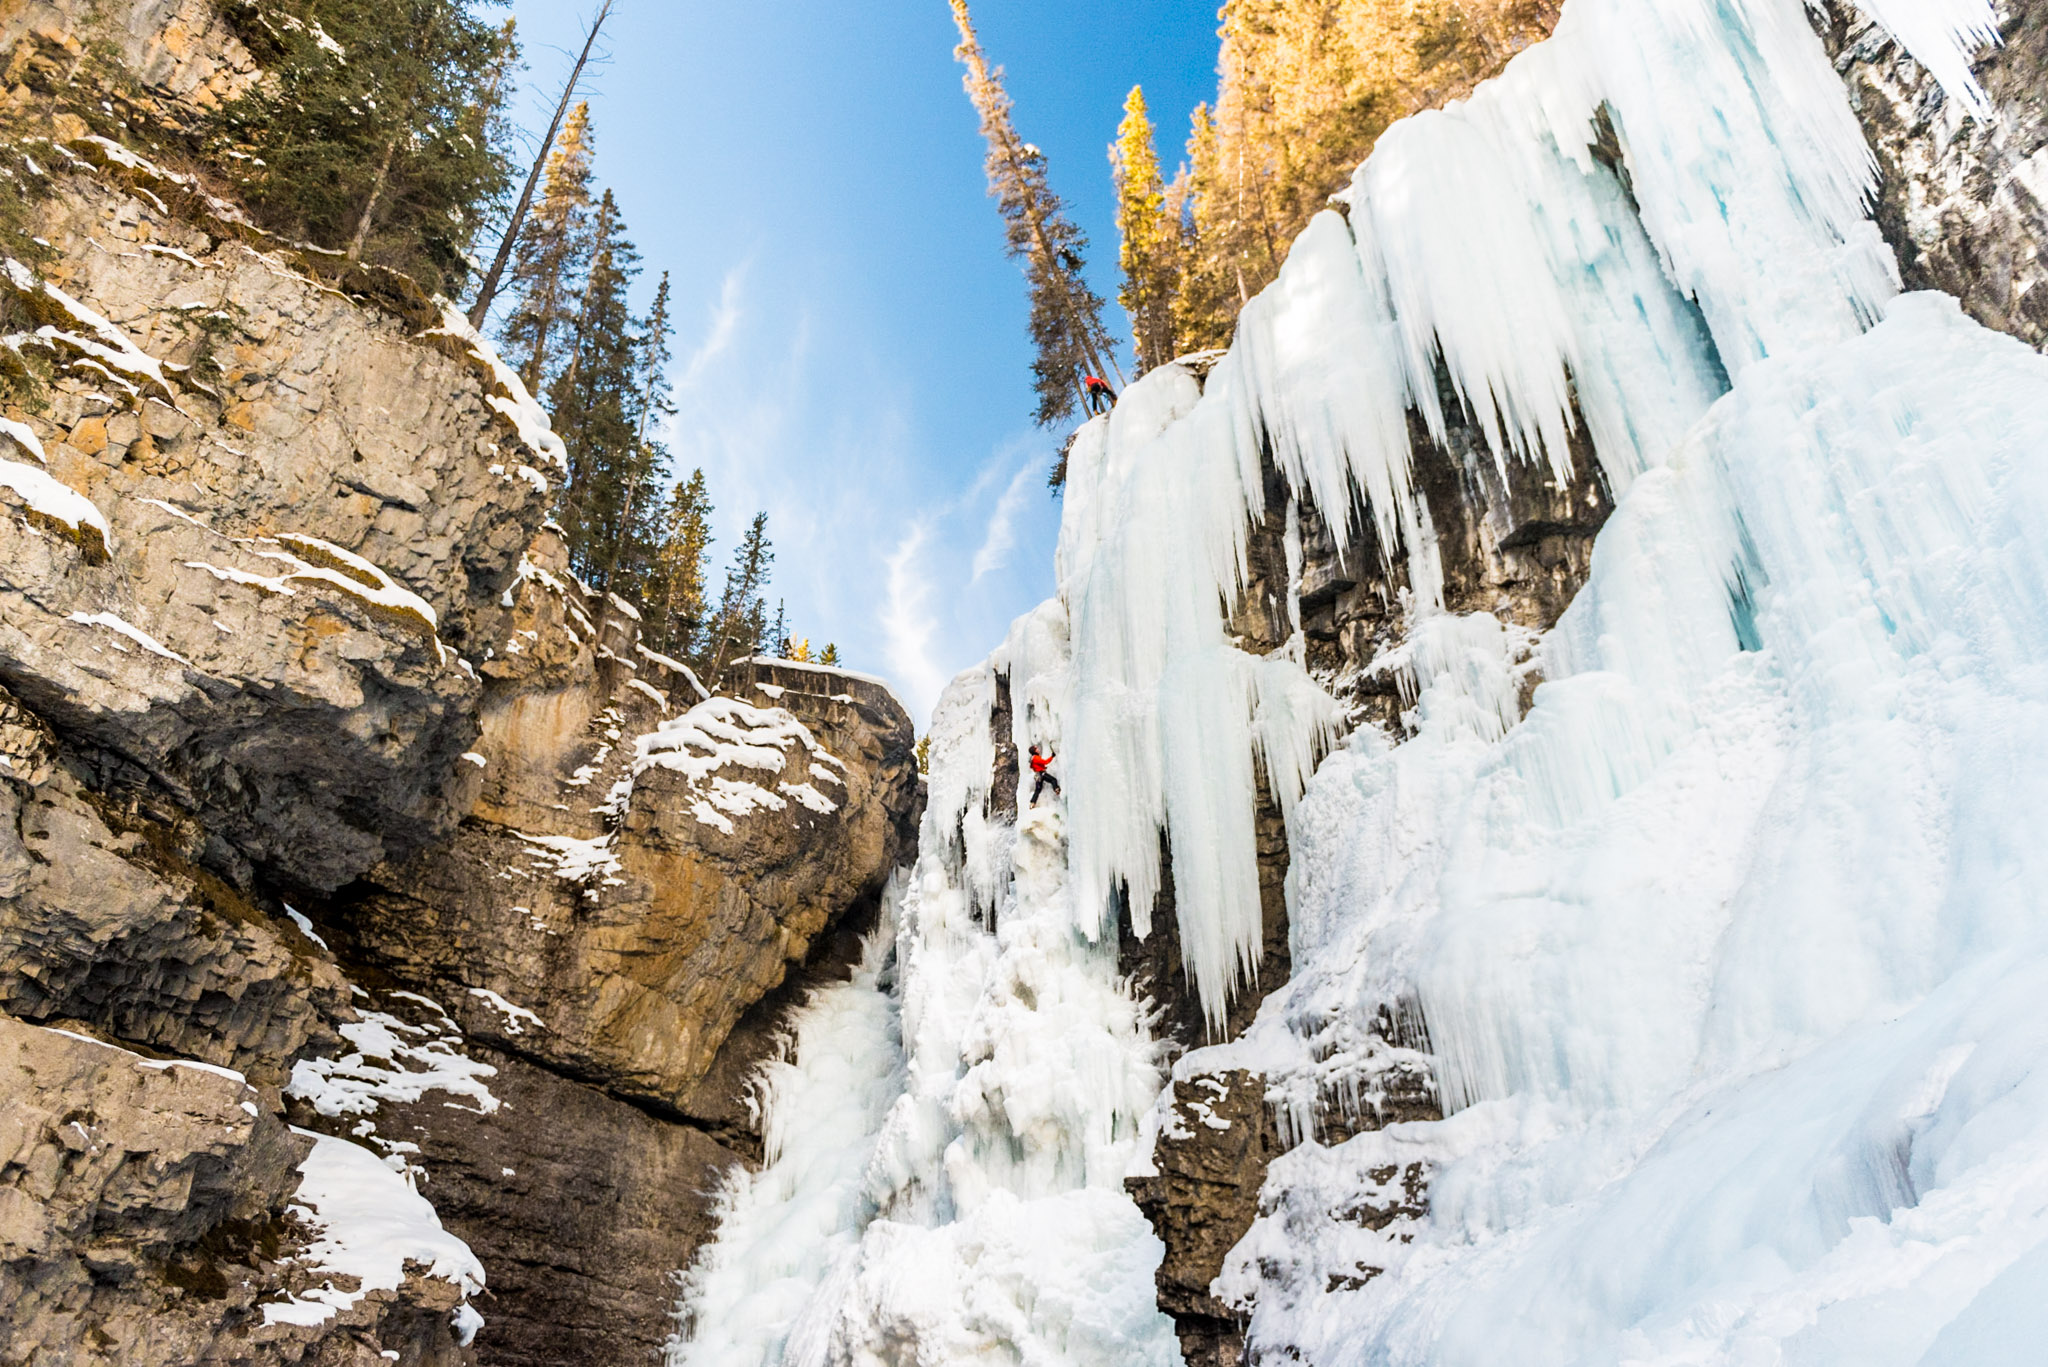 Chelsea Czibere - January 25, 2019 - Johnston Canyon-24.jpg